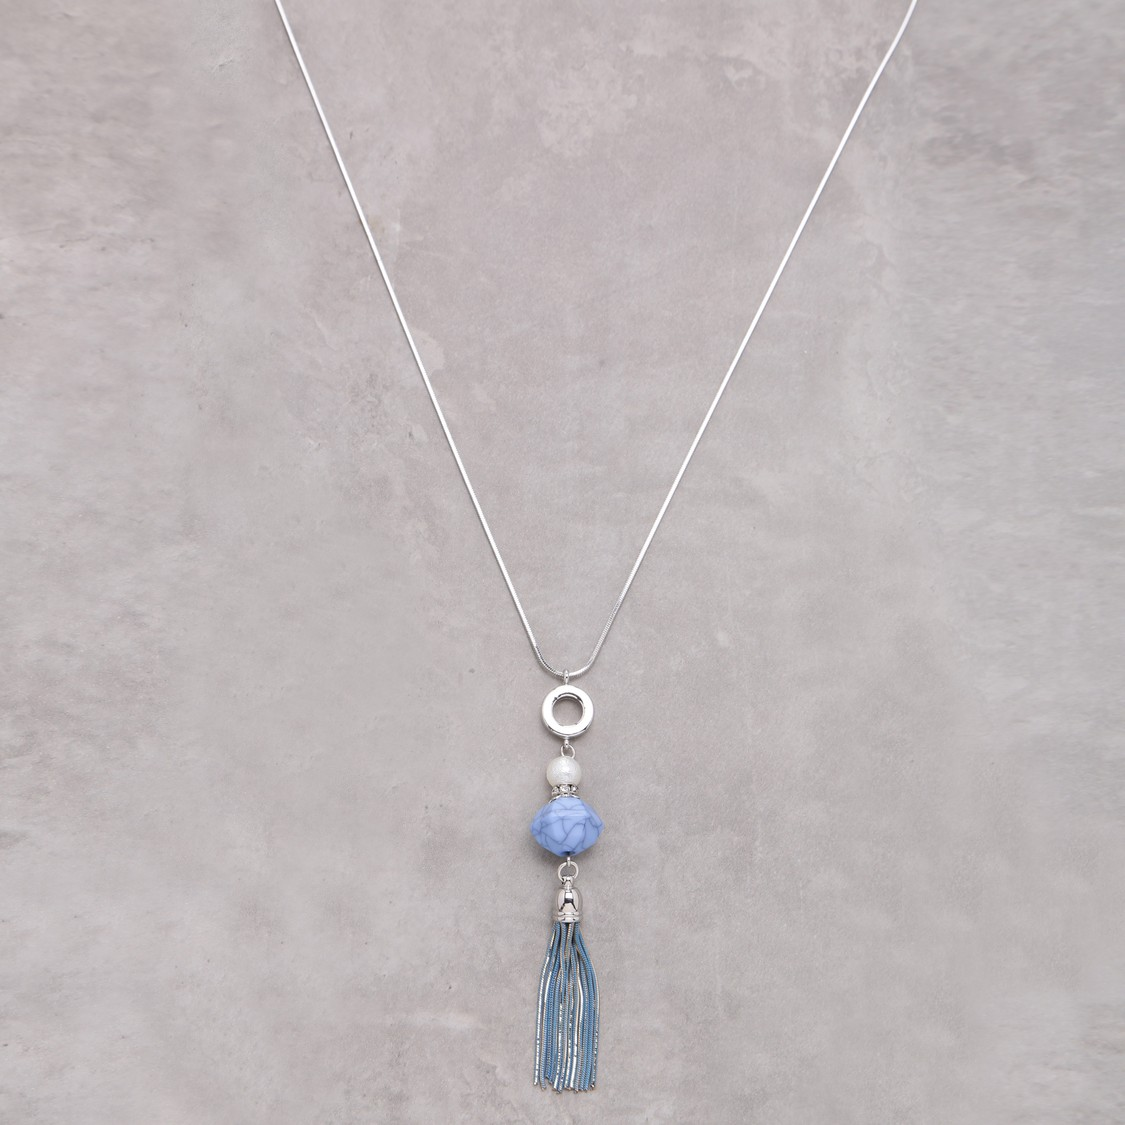 Long Pendant Necklace with Lobster Clasp